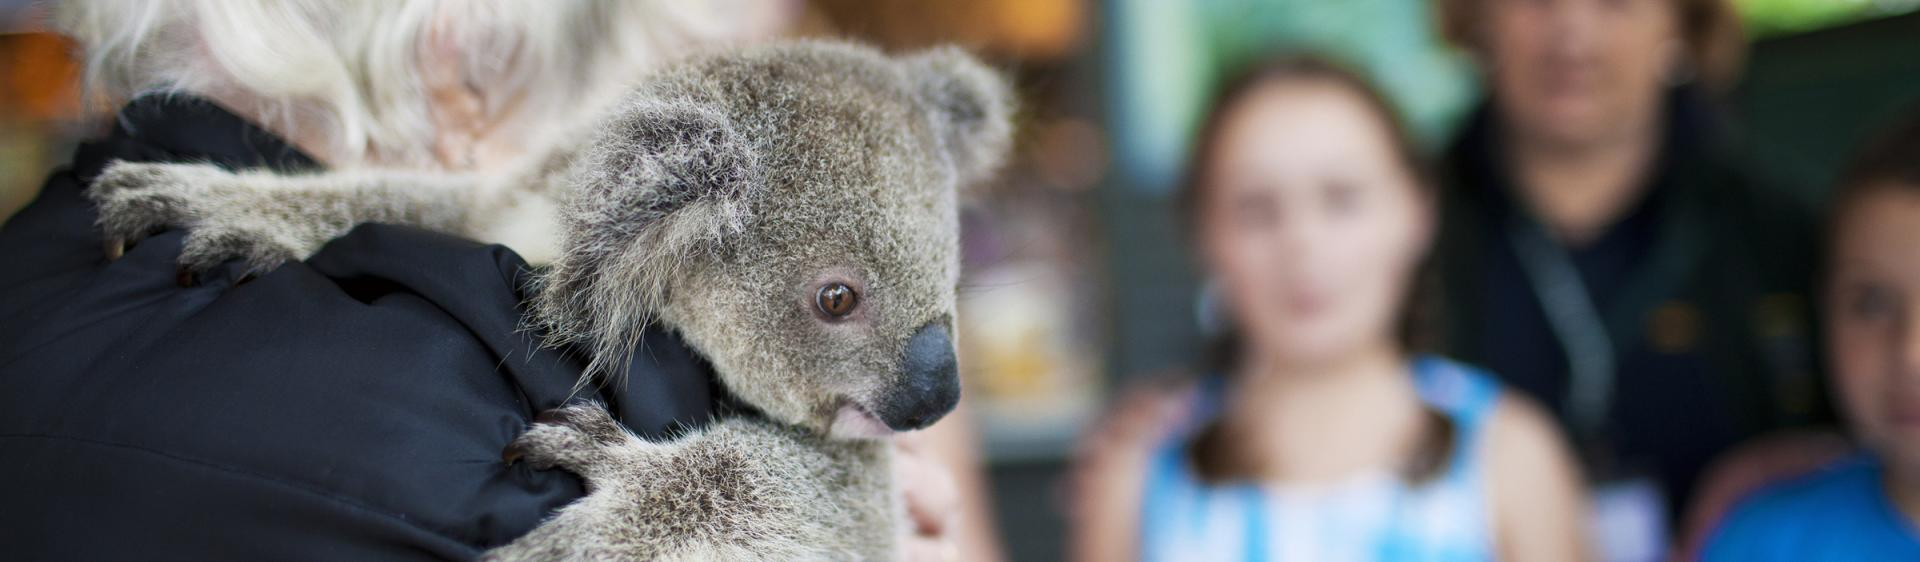 Port Macquarie Koala Hospital